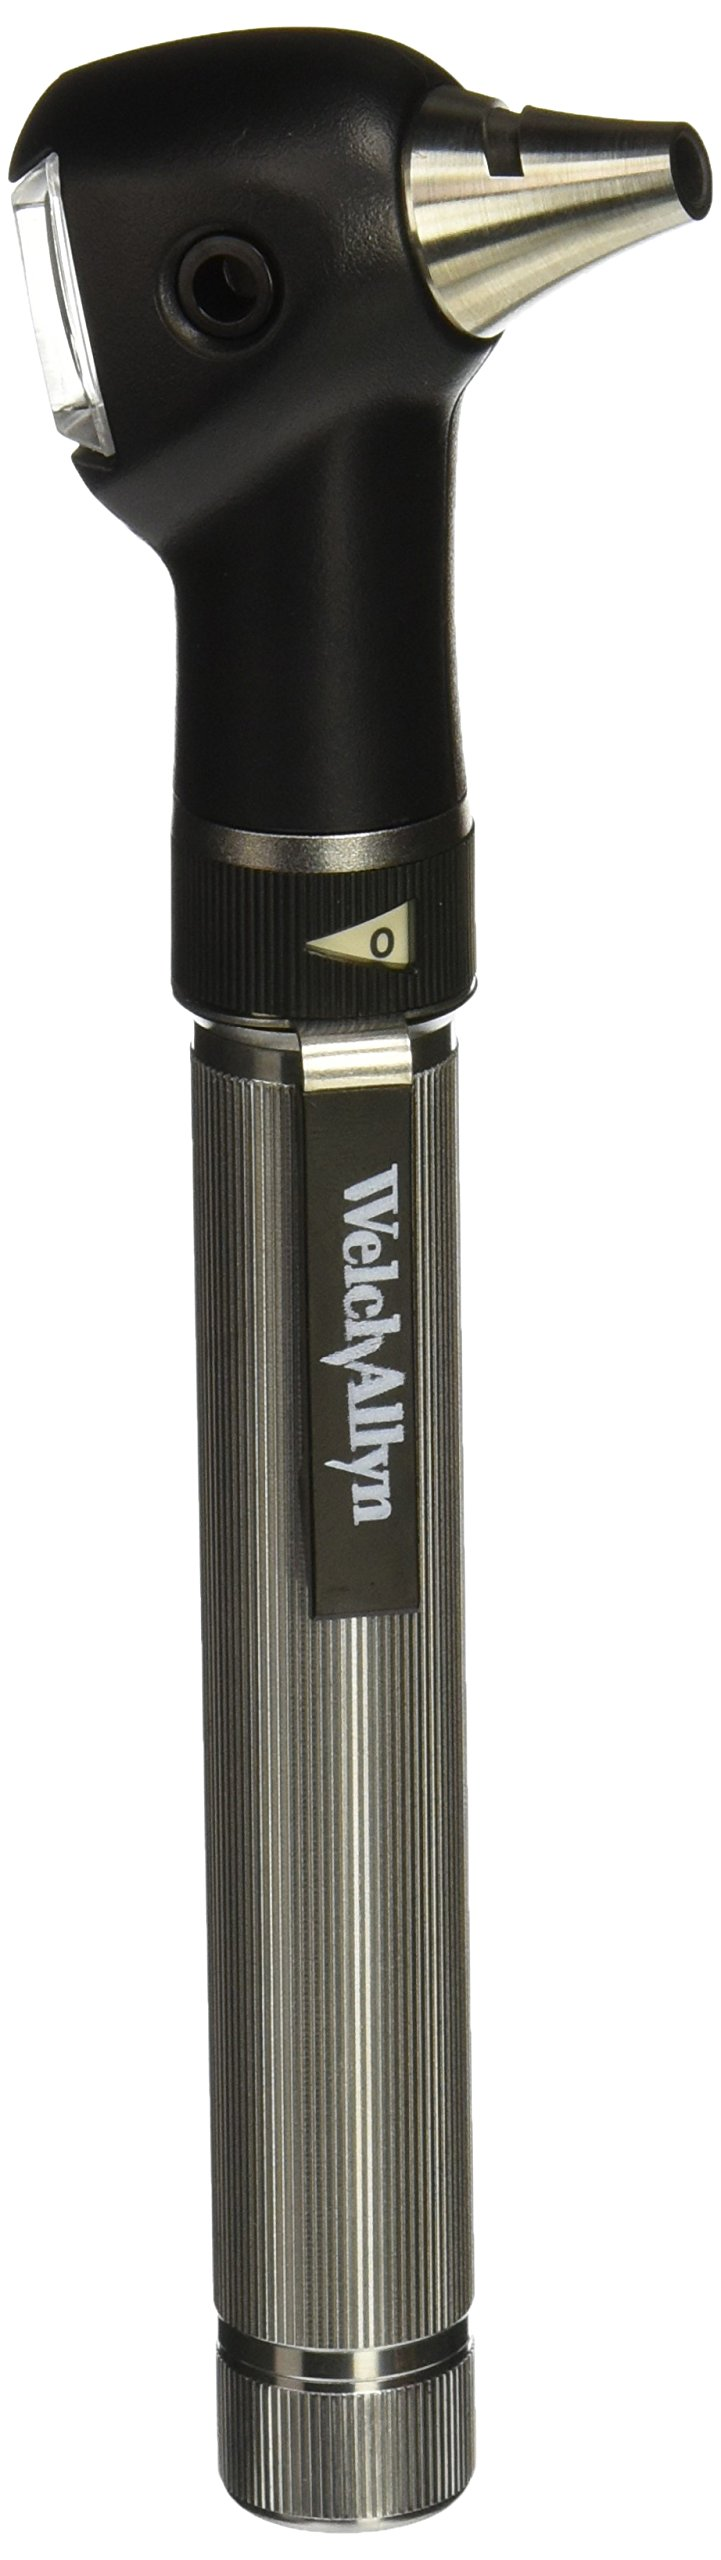 Welch Allyn WEL22821 PocketScope Otoscope with''AA'' Handle and Soft Case by Welch Allyn (Image #1)